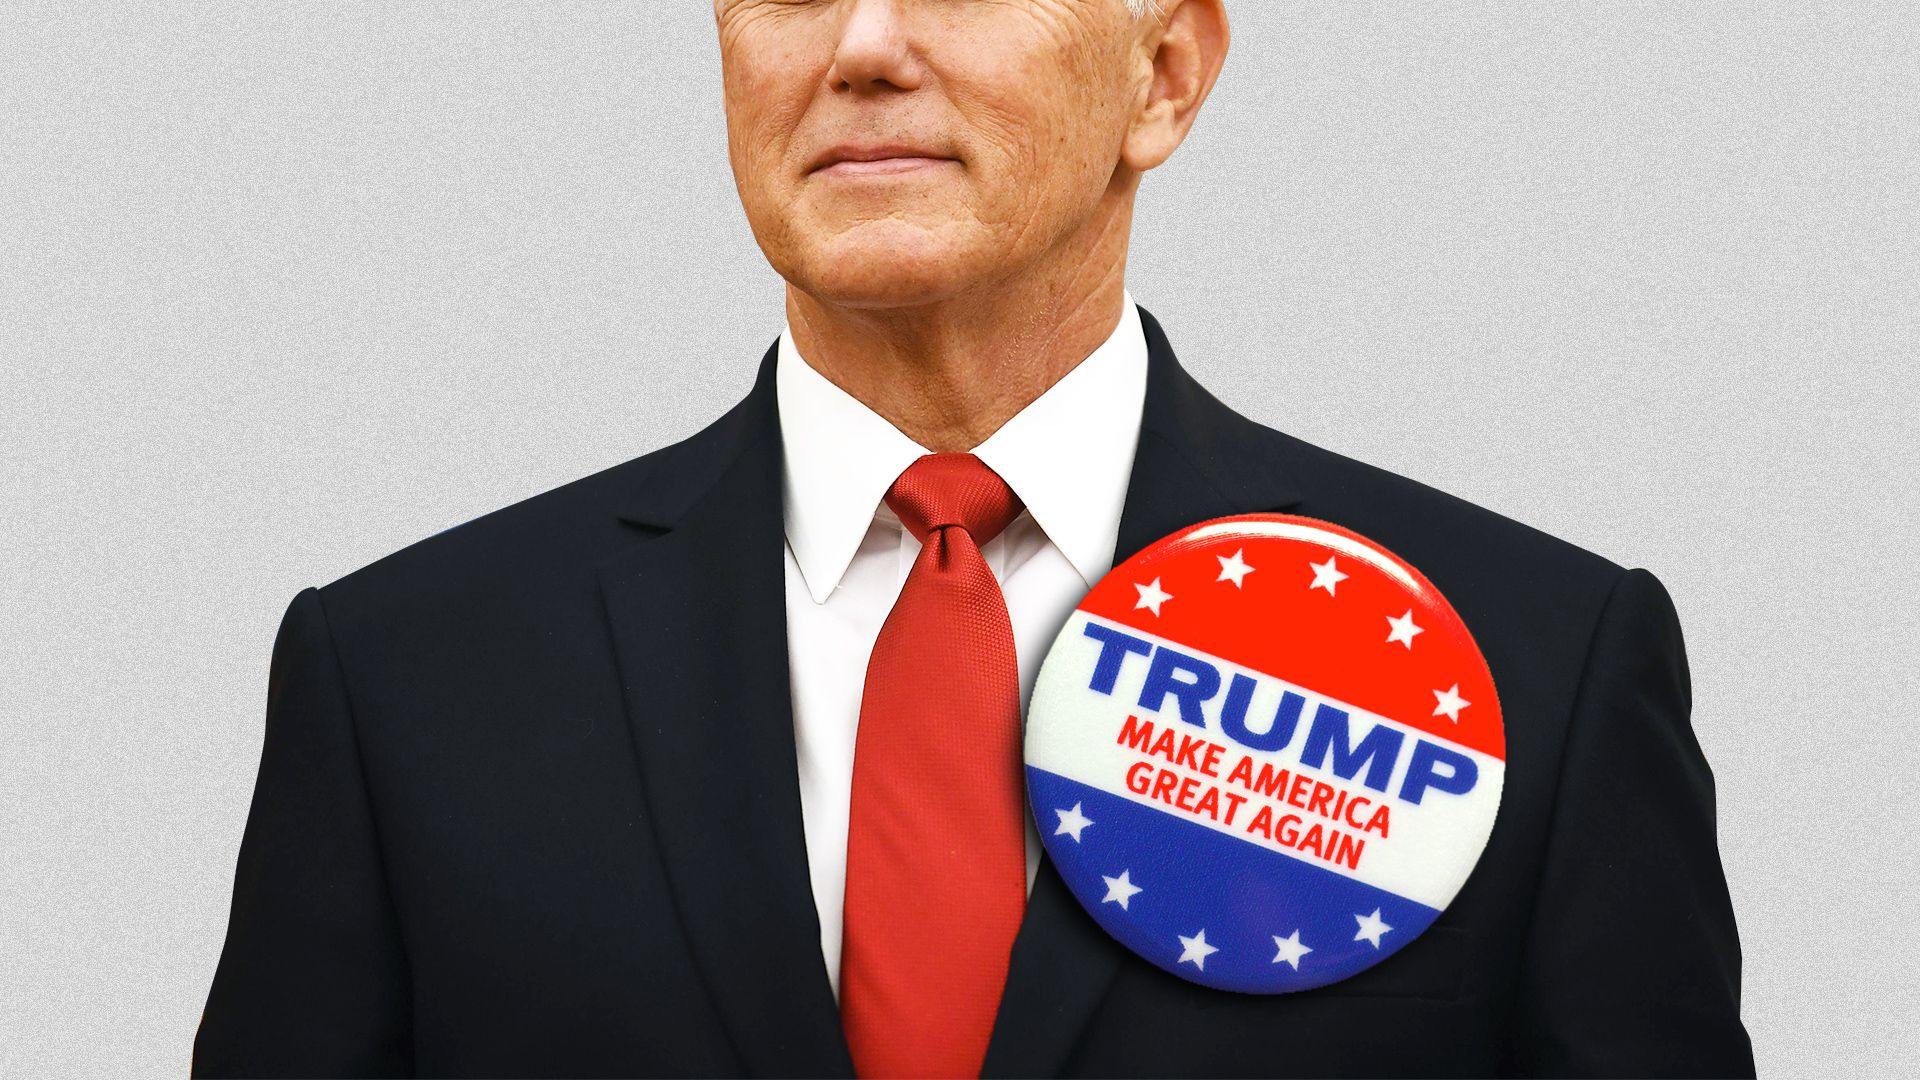 Illustration of Mike Pence with a larger very oversized Trump button on his lapel.